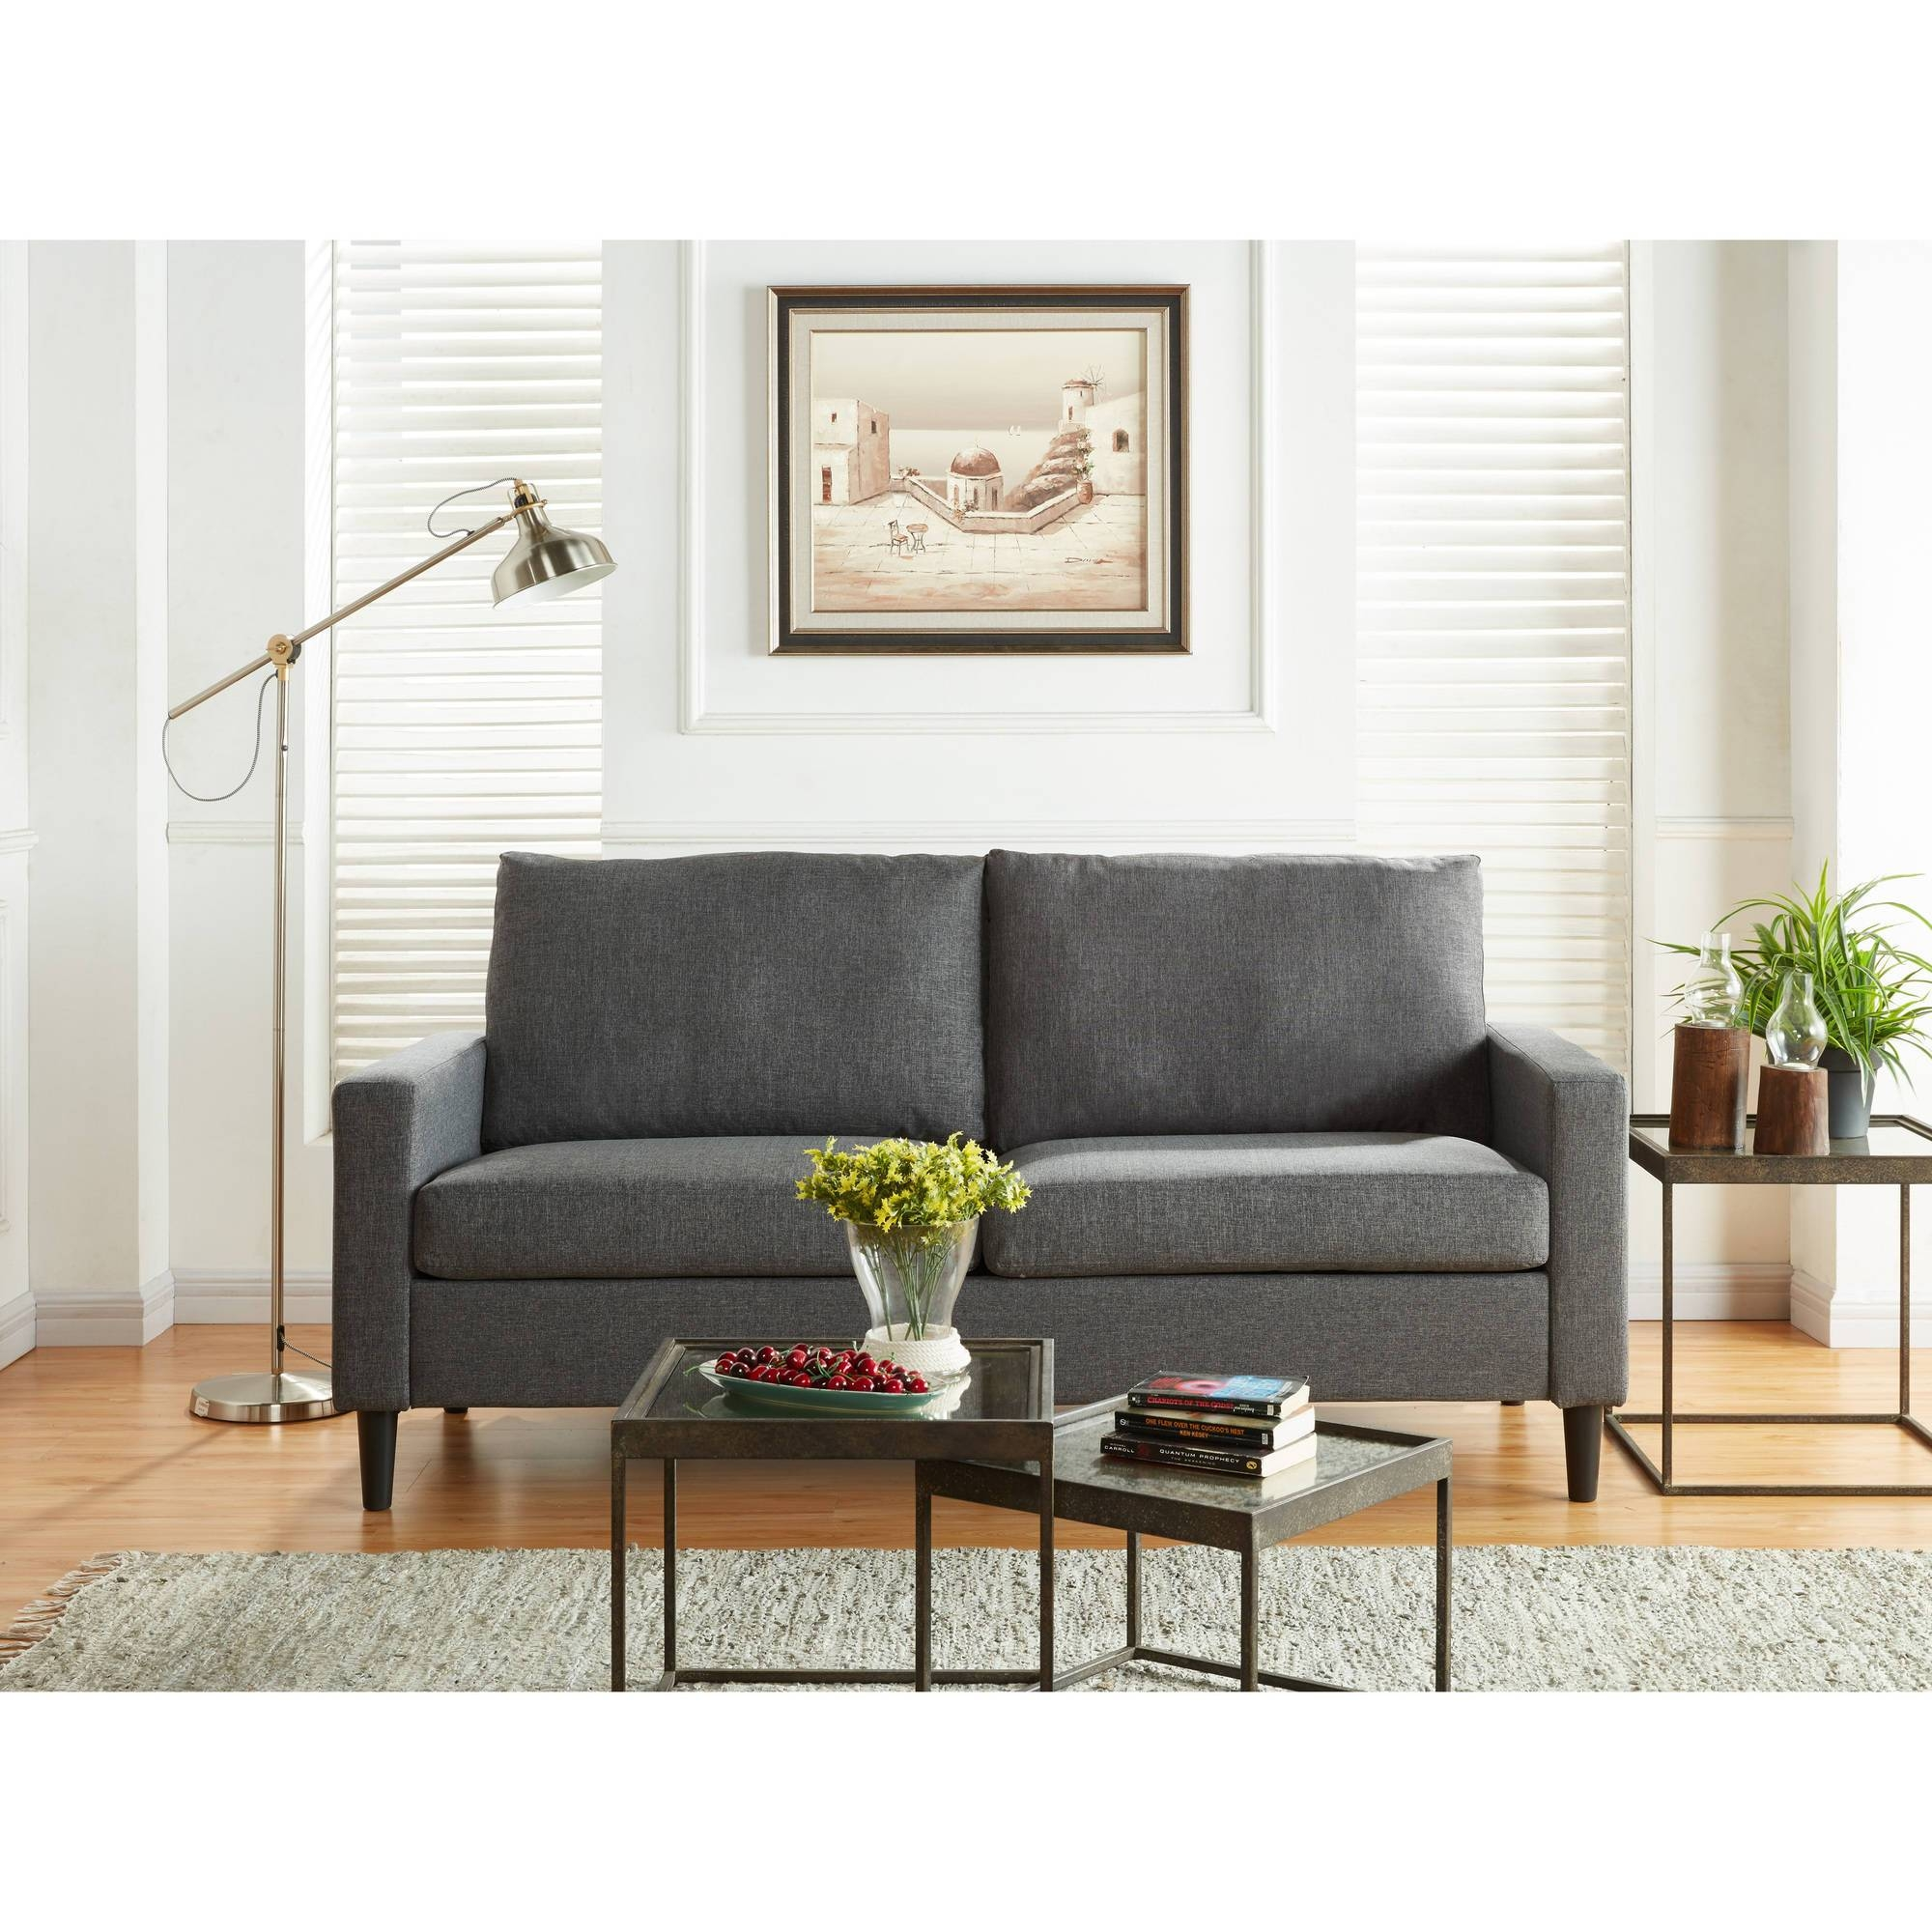 Sectional Sleeper Sofas with Sleeper Sectional Sofas (Image 14 of 30)